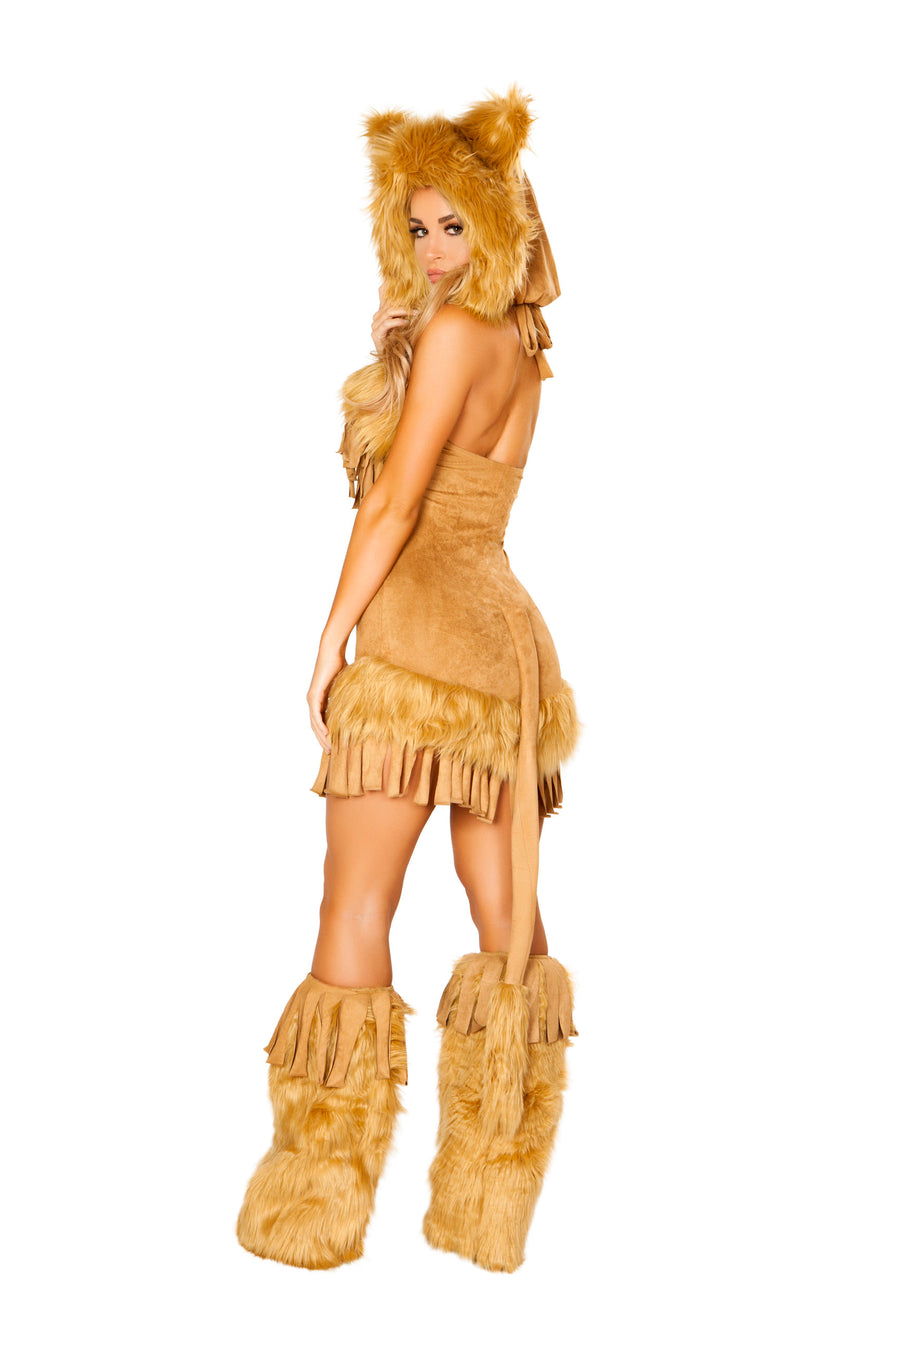 4872 - 1pc The Bashful Lion ${description} | Roma Costume and Roma Confidential wholesale manufacturer of Women Apparel bulk world wide wholesale and world wide drop ship services for Adult Halloween Costumes, Sexy and Elegant Lingerie, Rave Clothing, Club wear, and Christmas Costumes. Costumes, Roma Costume, Inc., Roma Costume, Roma Confidential, Wholesale clothing, drop ship, drop ship service, Wholesale Lingerie, Wholesale Adult Halloween Costumes, Rave Clothing, EDM Clothing, Festival Wear, Christmas Costumes, Clubwear, Club wear.